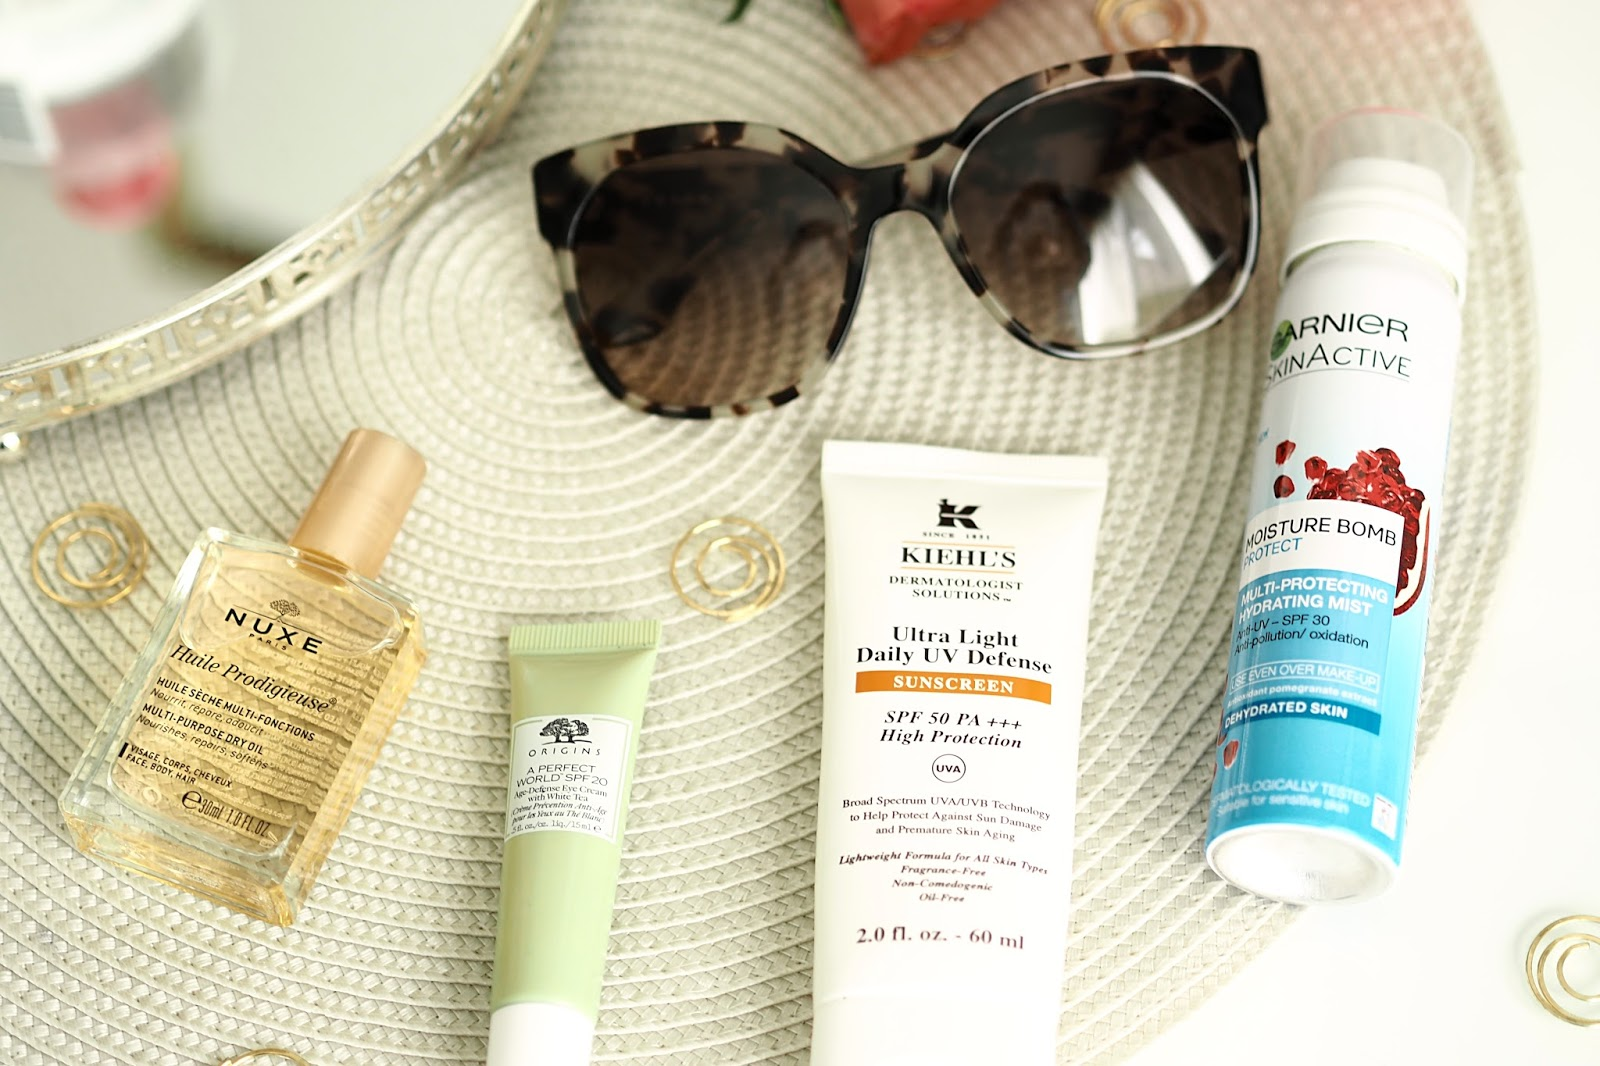 The myths about SPF